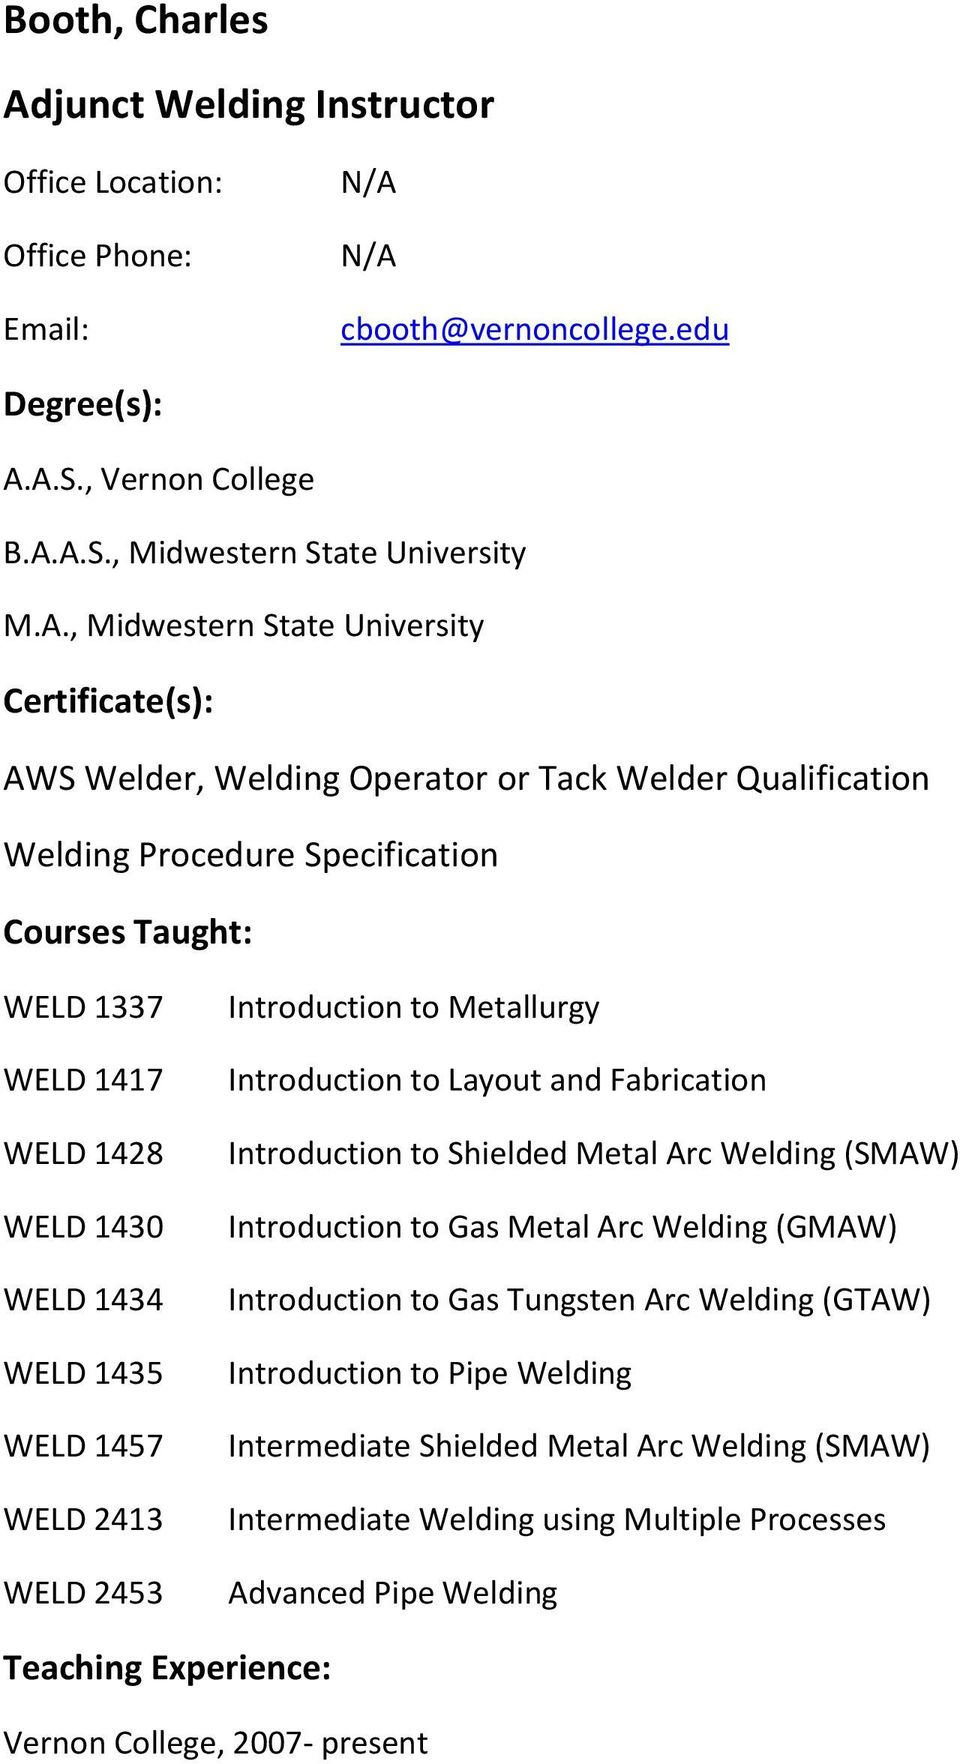 A.S., Vernon College B.A.A.S., Midwestern State University M.A., Midwestern State University Certificate(s): AWS Welder, Welding Operator or Tack Welder Qualification Welding Procedure